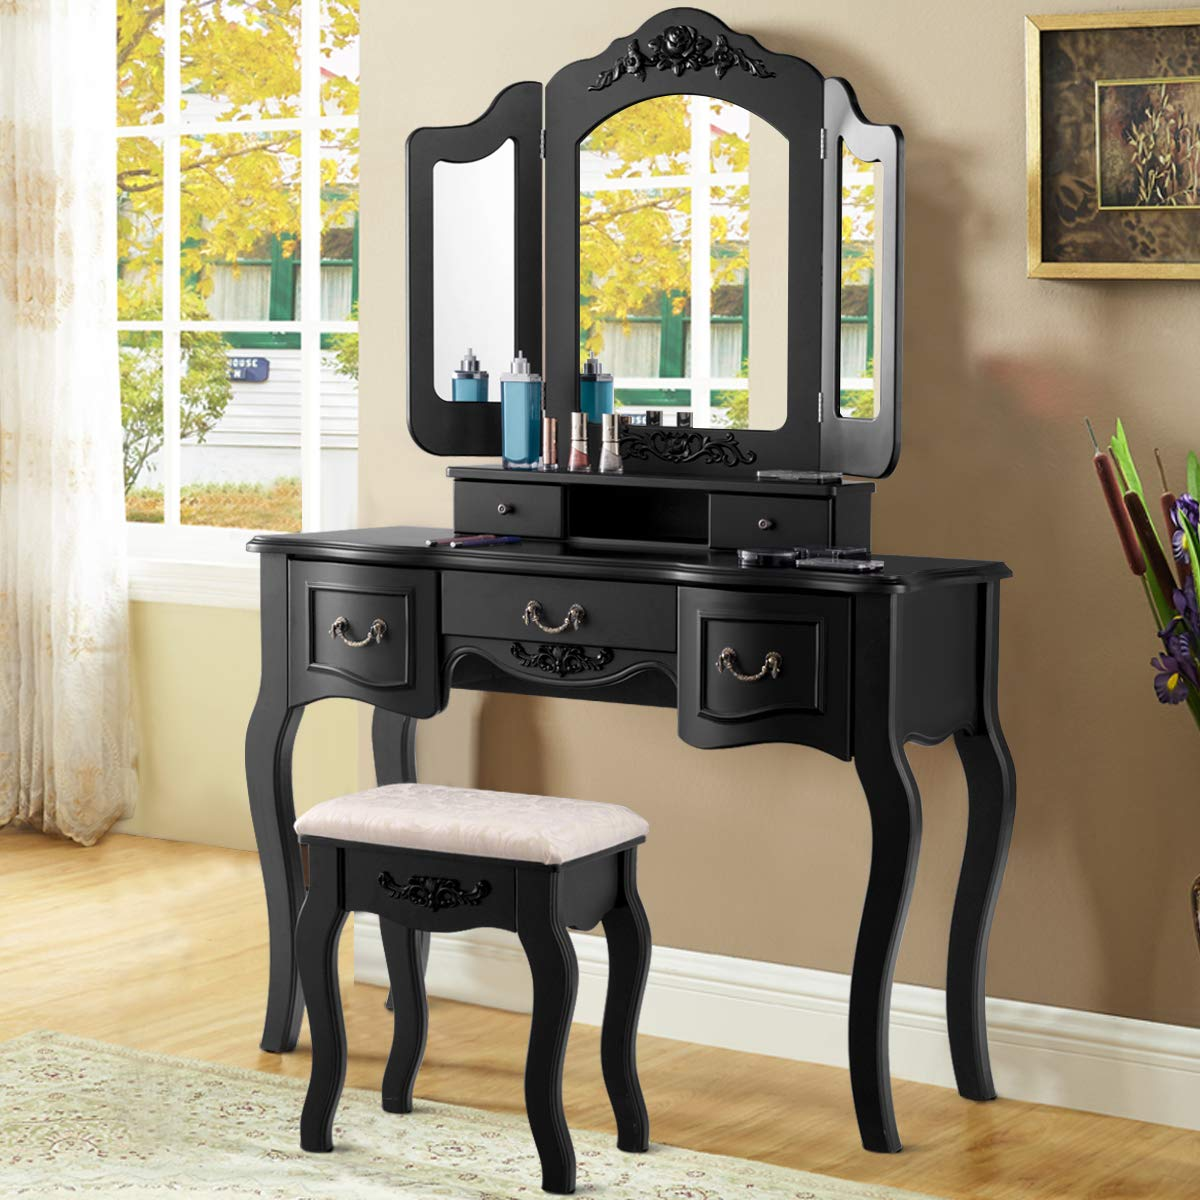 Giantex Vanity Dressing Table Set with Stool, Tri Folding Vintage Vanity Makeup Dressing Table Set 5 Drawers Christmas, Large Vanities with Bench (Black)